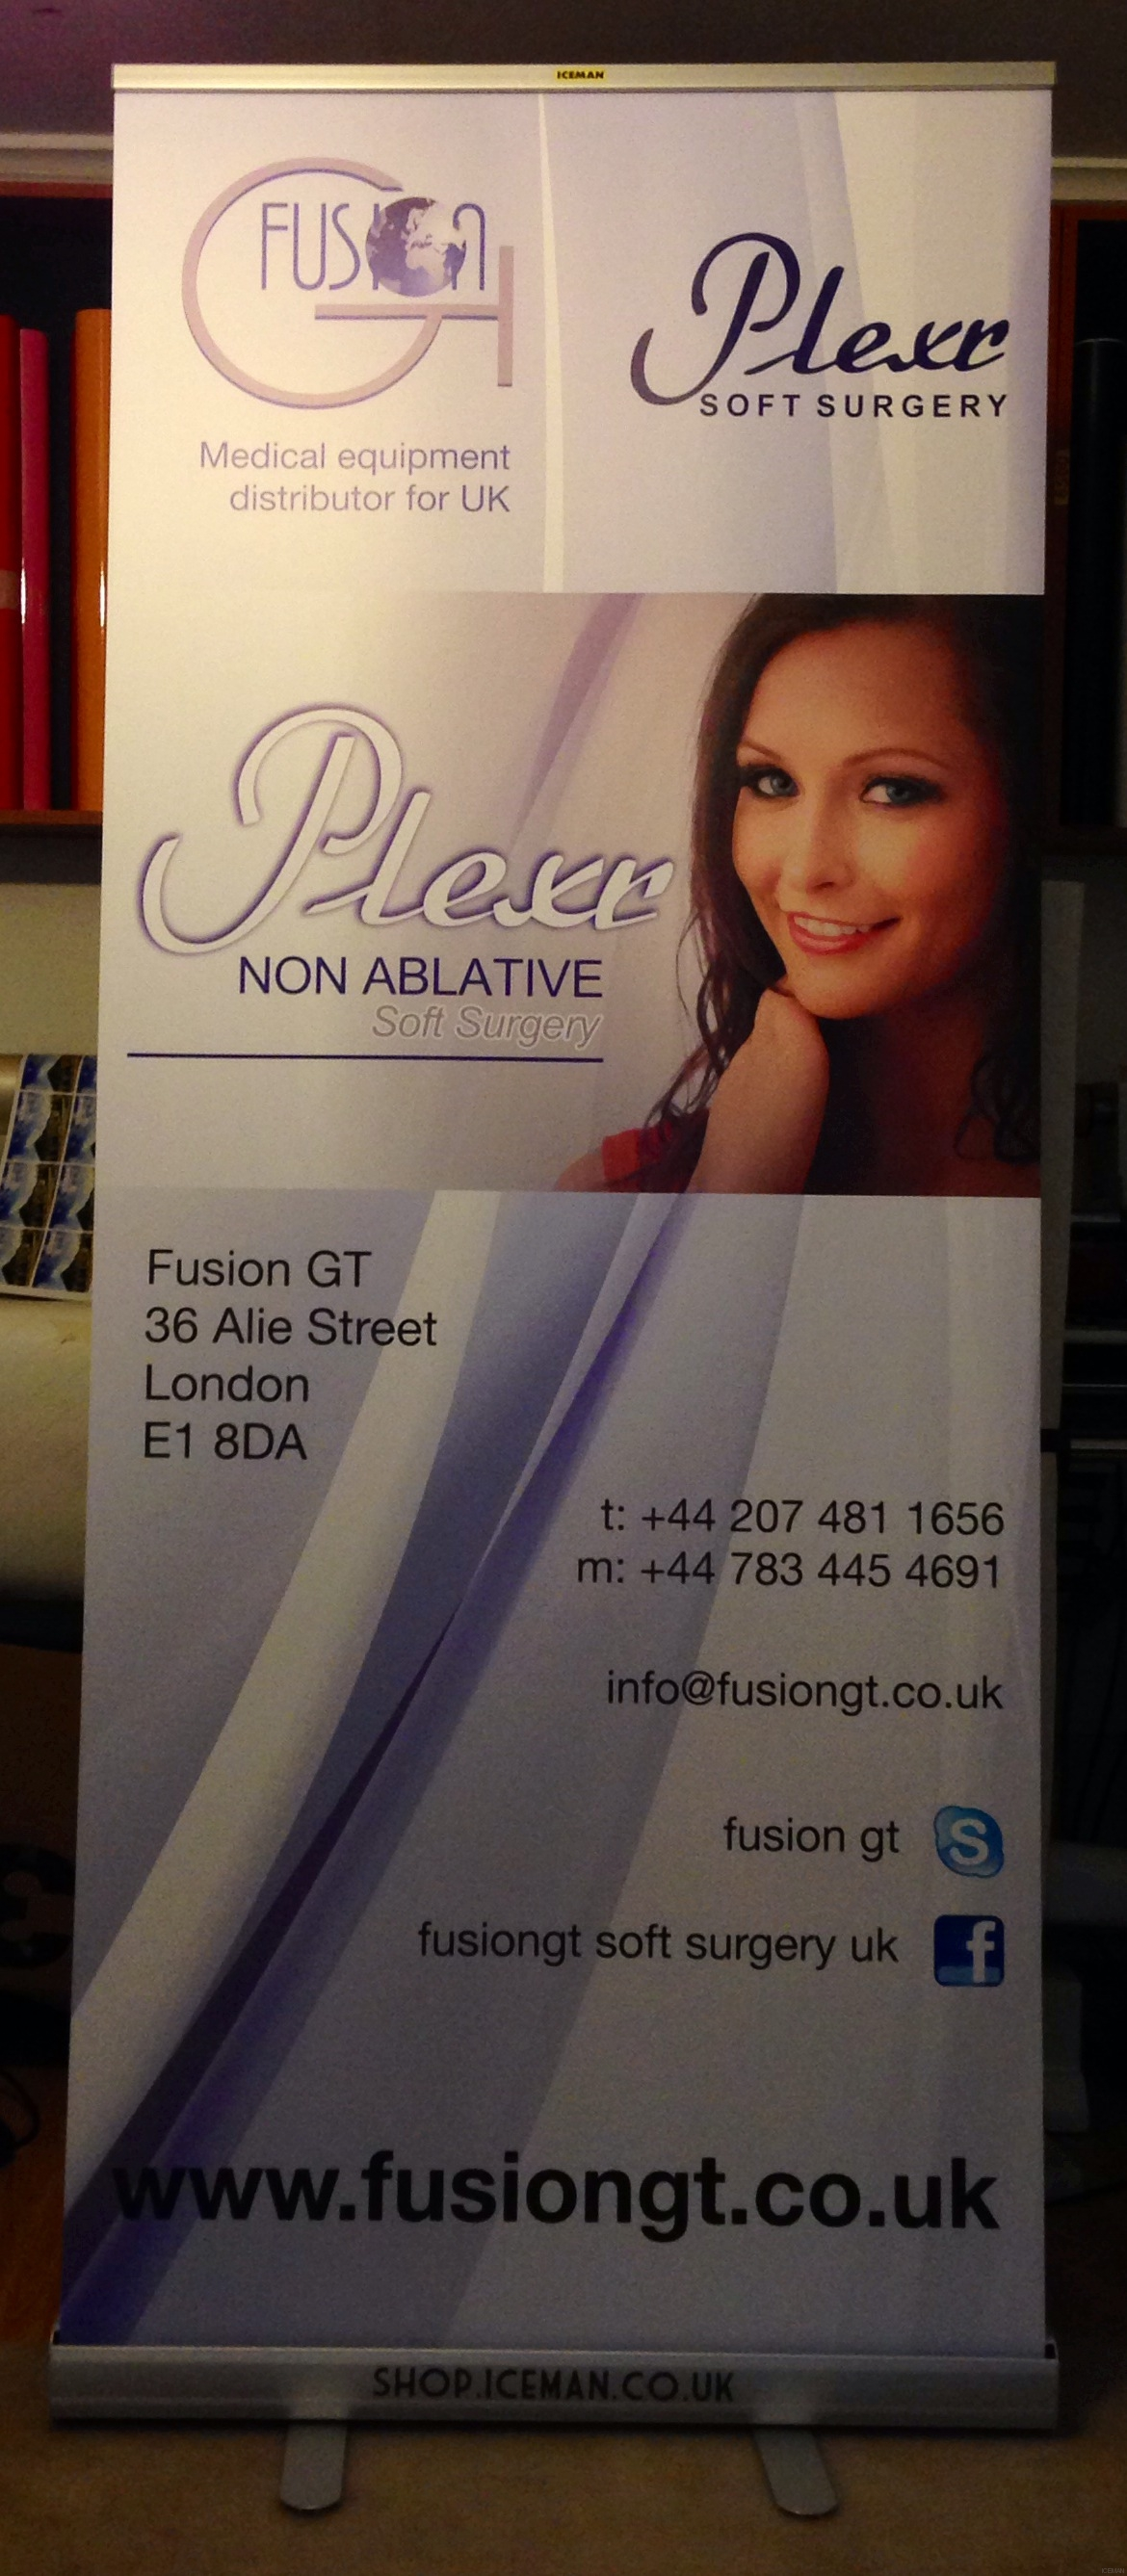 Fusin GT non ablative surgery roll up banner stand